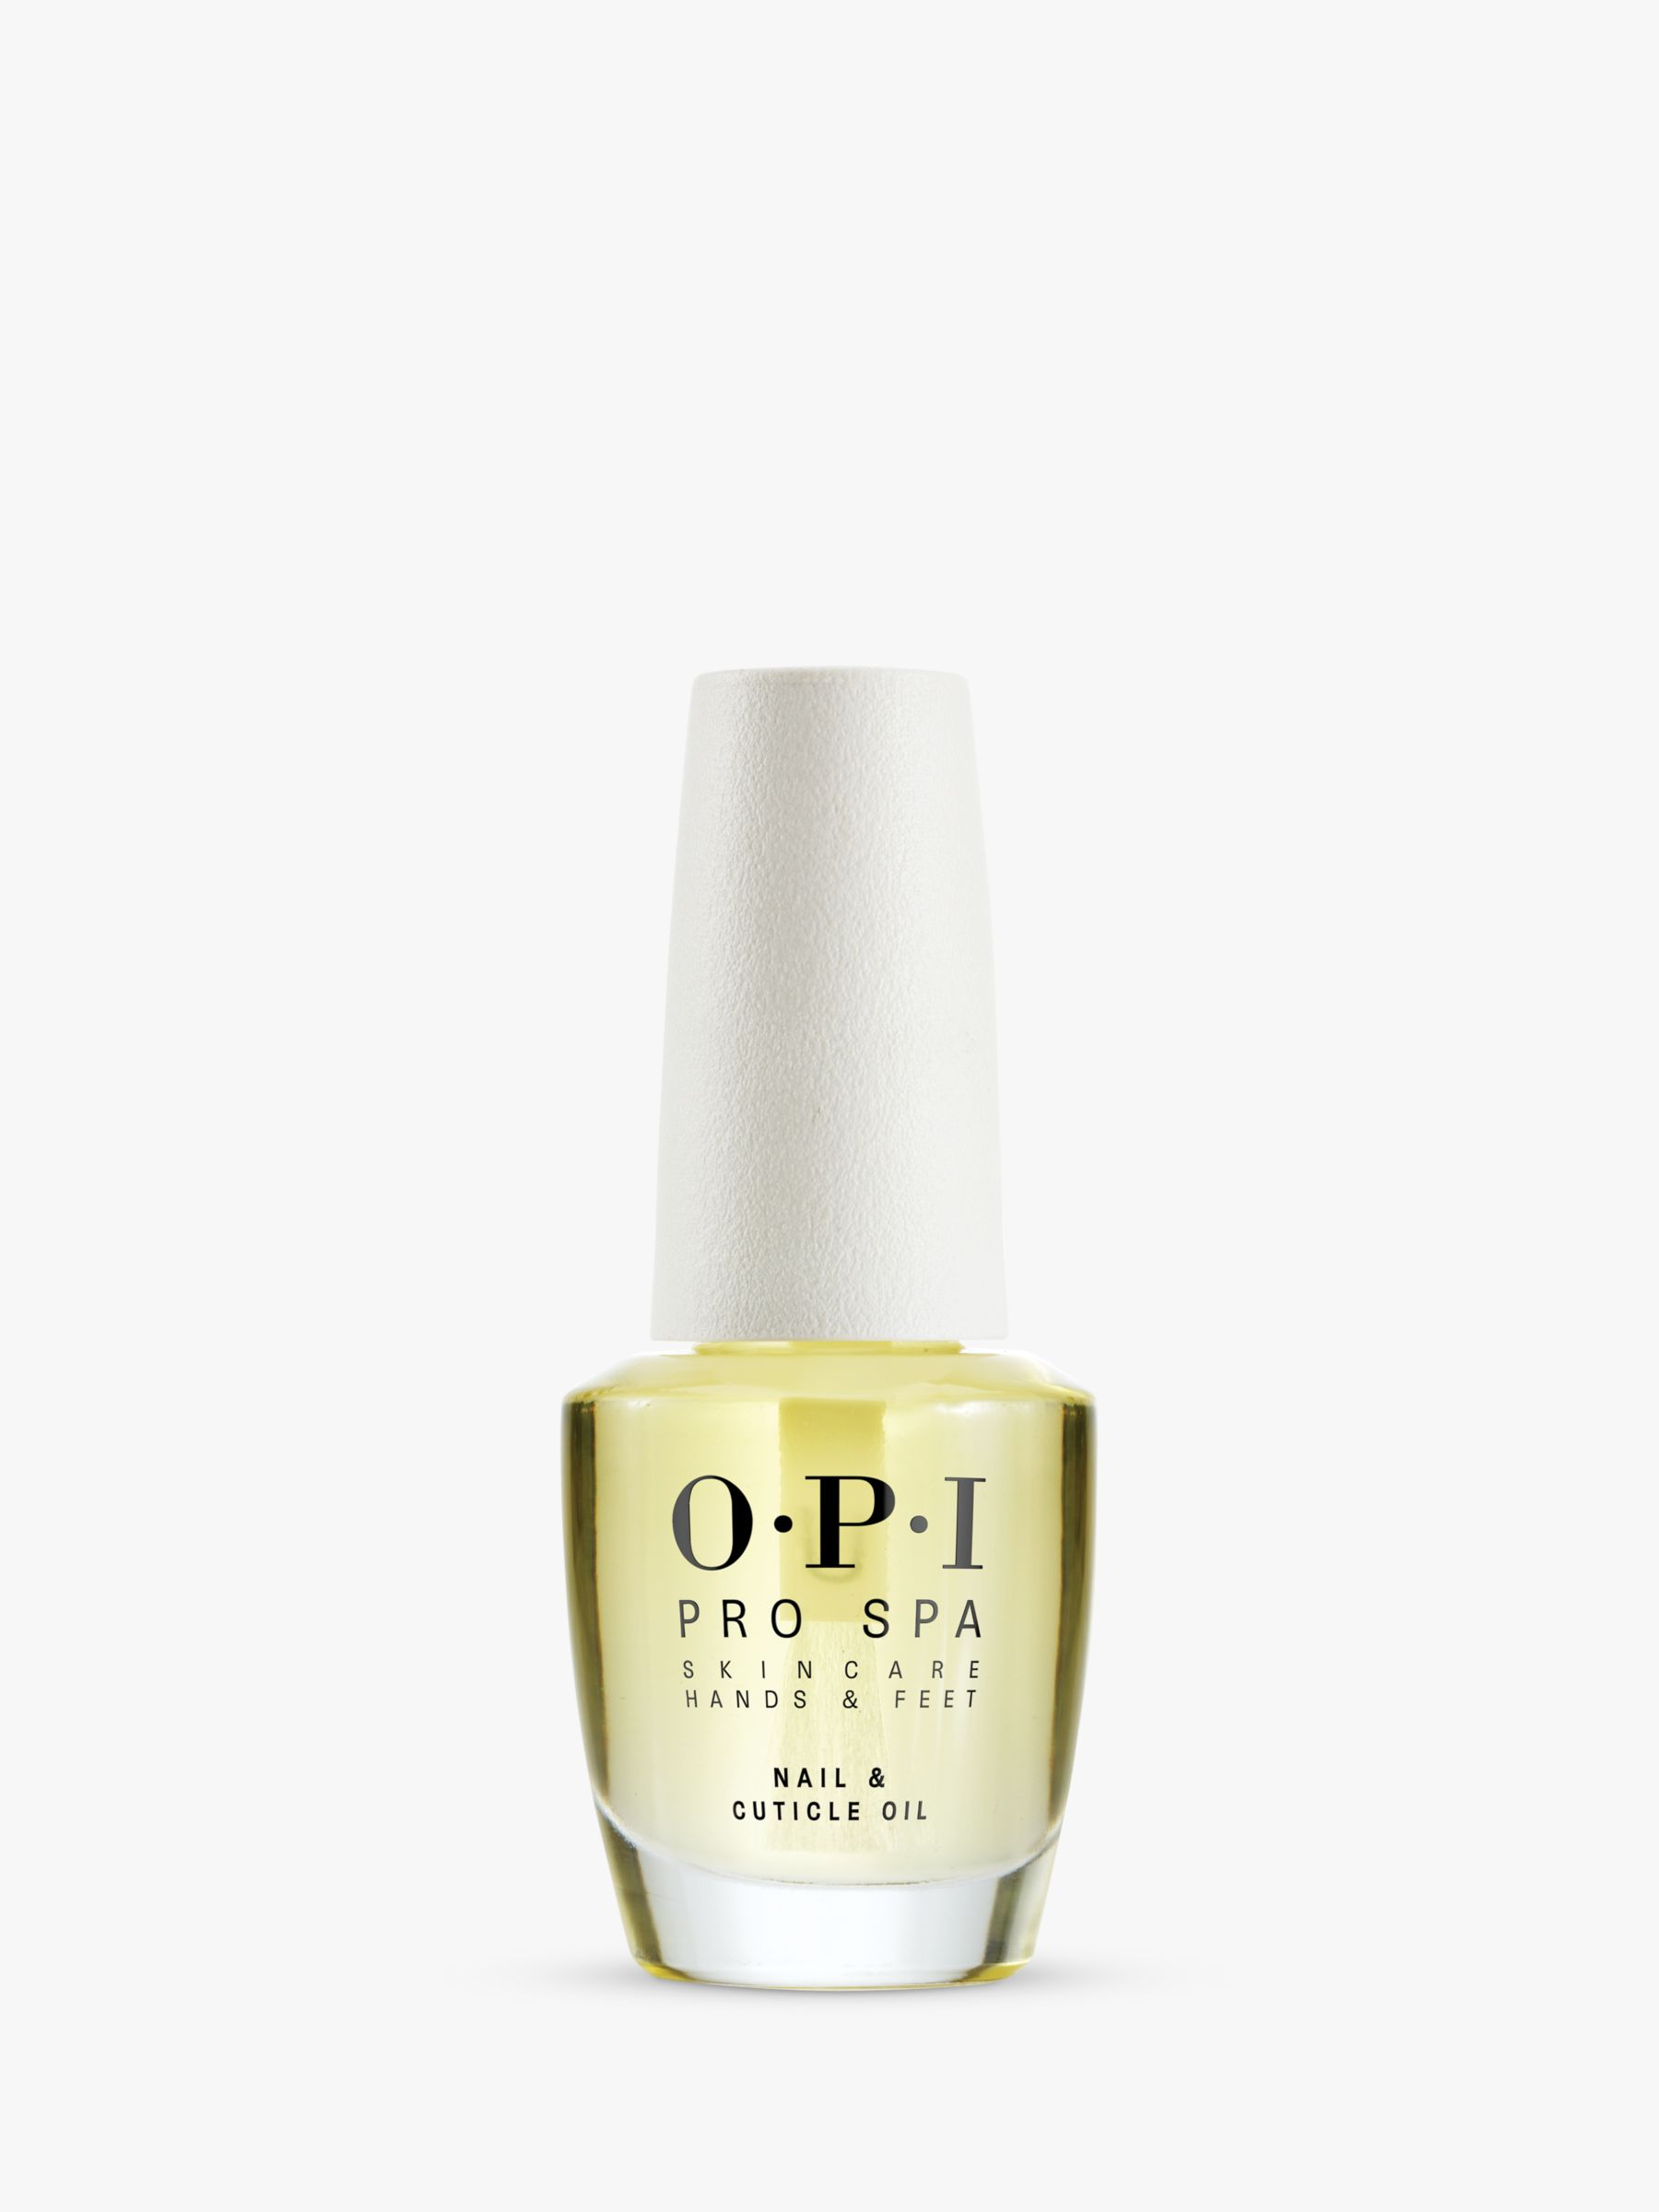 Buy OPI Pro Spa Nail & Cuticle Oil, 15ml Online at www.retrievedmagnetic.com